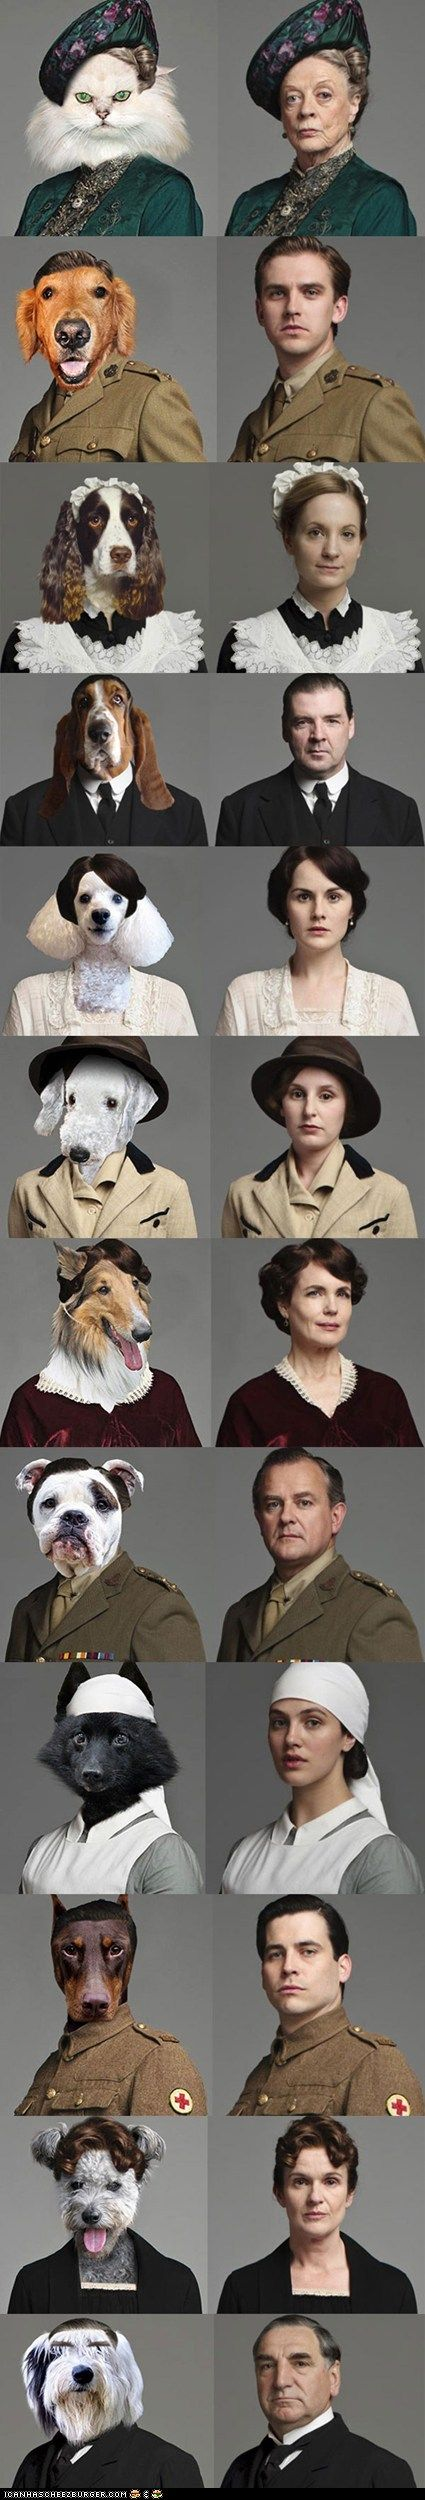 The cast of Downton Abbey as dogs. Idk why but I thought of @melody berry!!! Haha maybe it's cuz I have pictures of dog butts on my camera..... :)